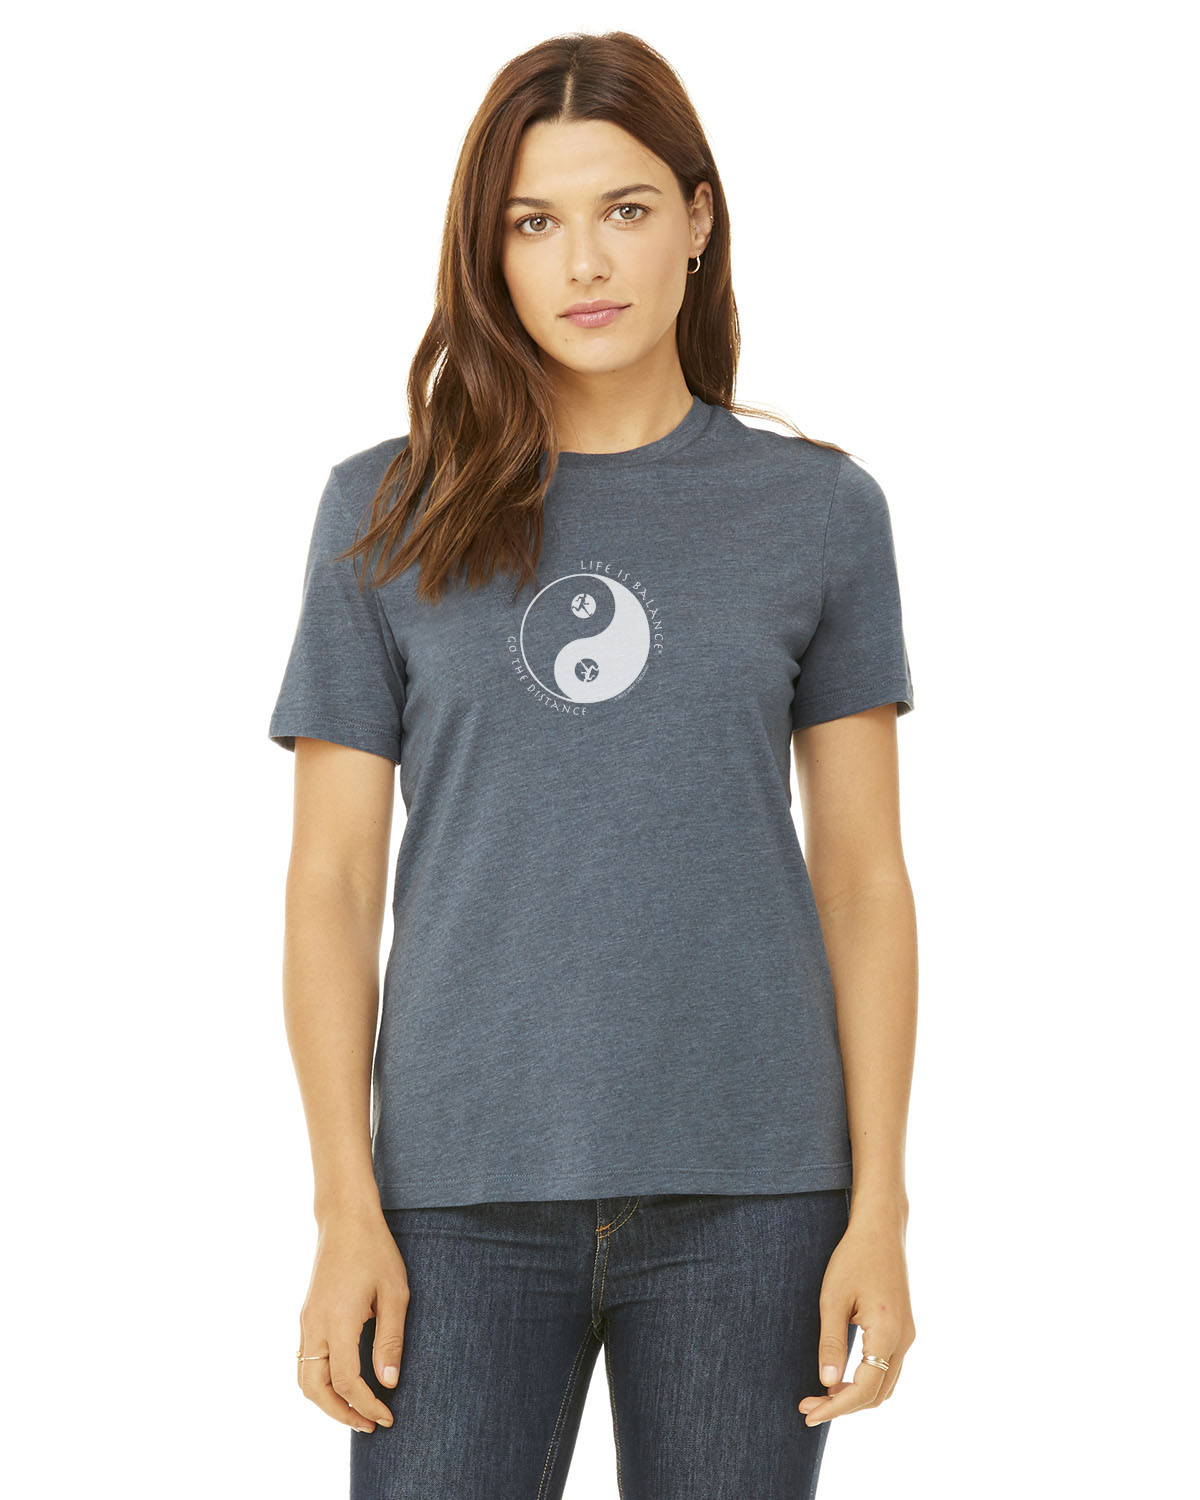 Women's short sleeve t-shirt (Heather Slate)